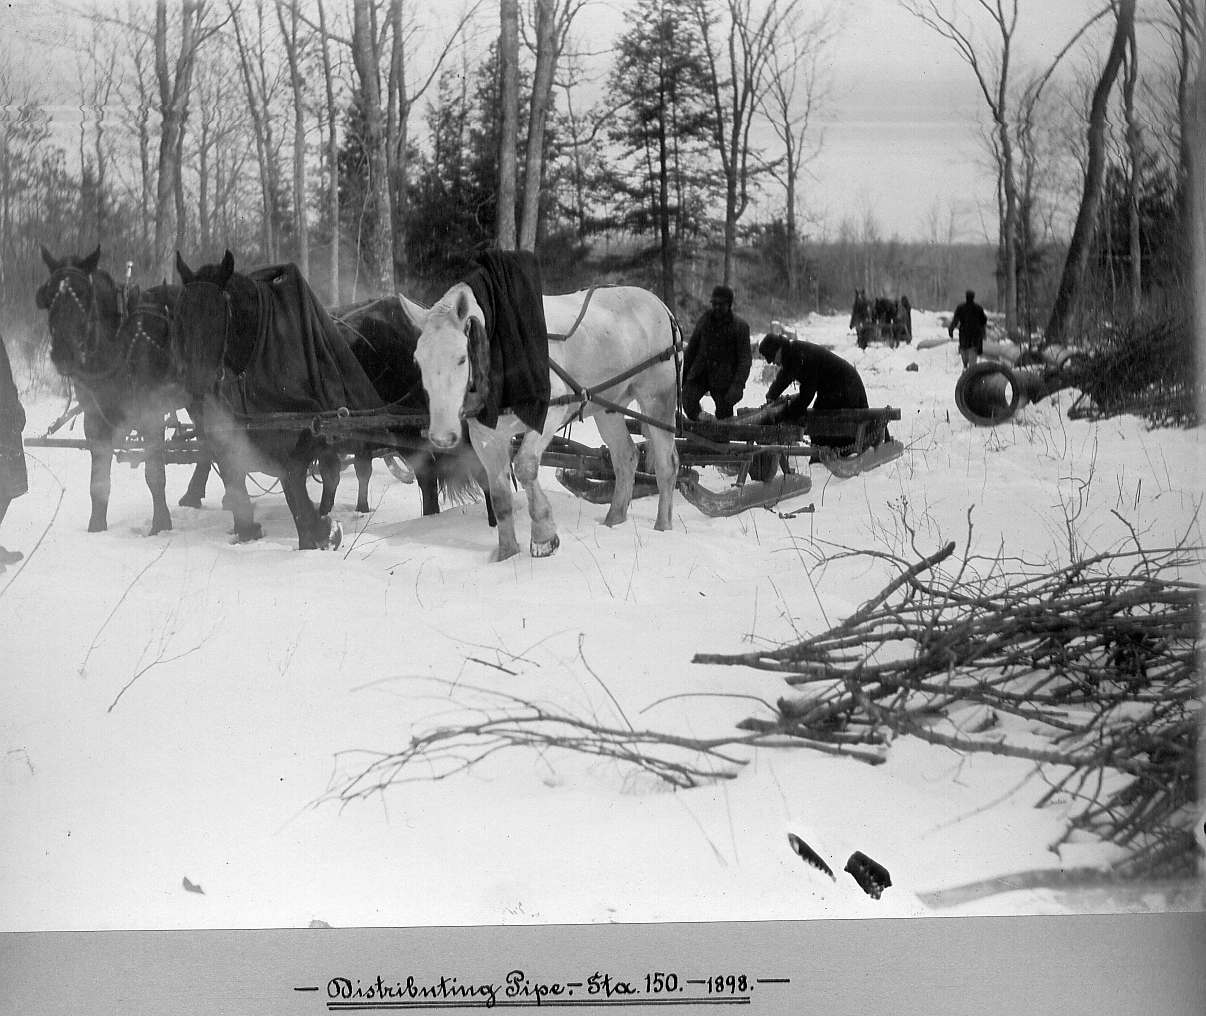 Horses pulling sleds with pipe and men